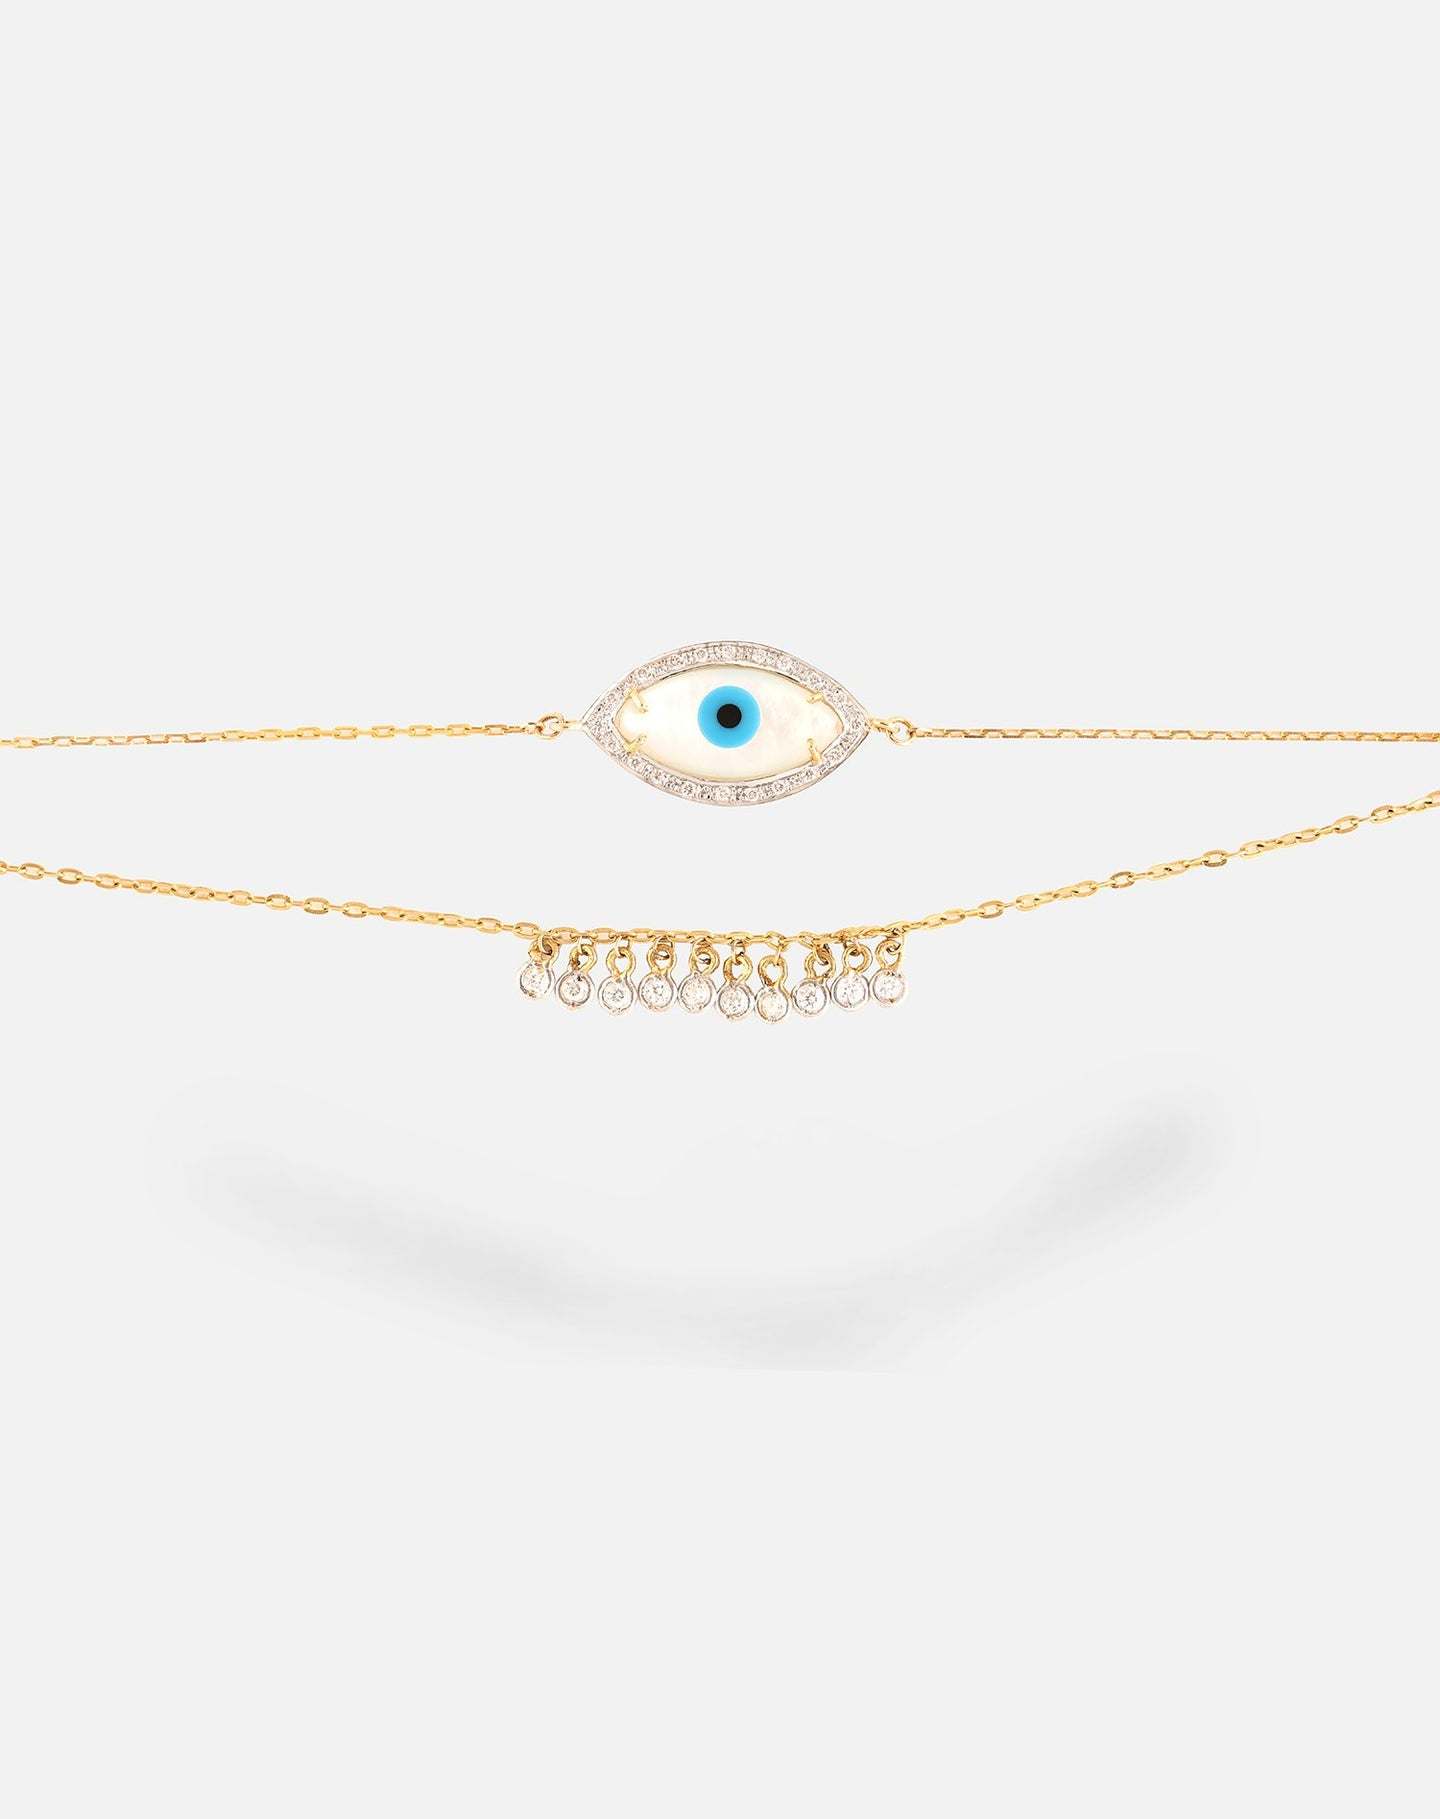 Marquise Evil Eye Bracelet with Dangling Diamonds